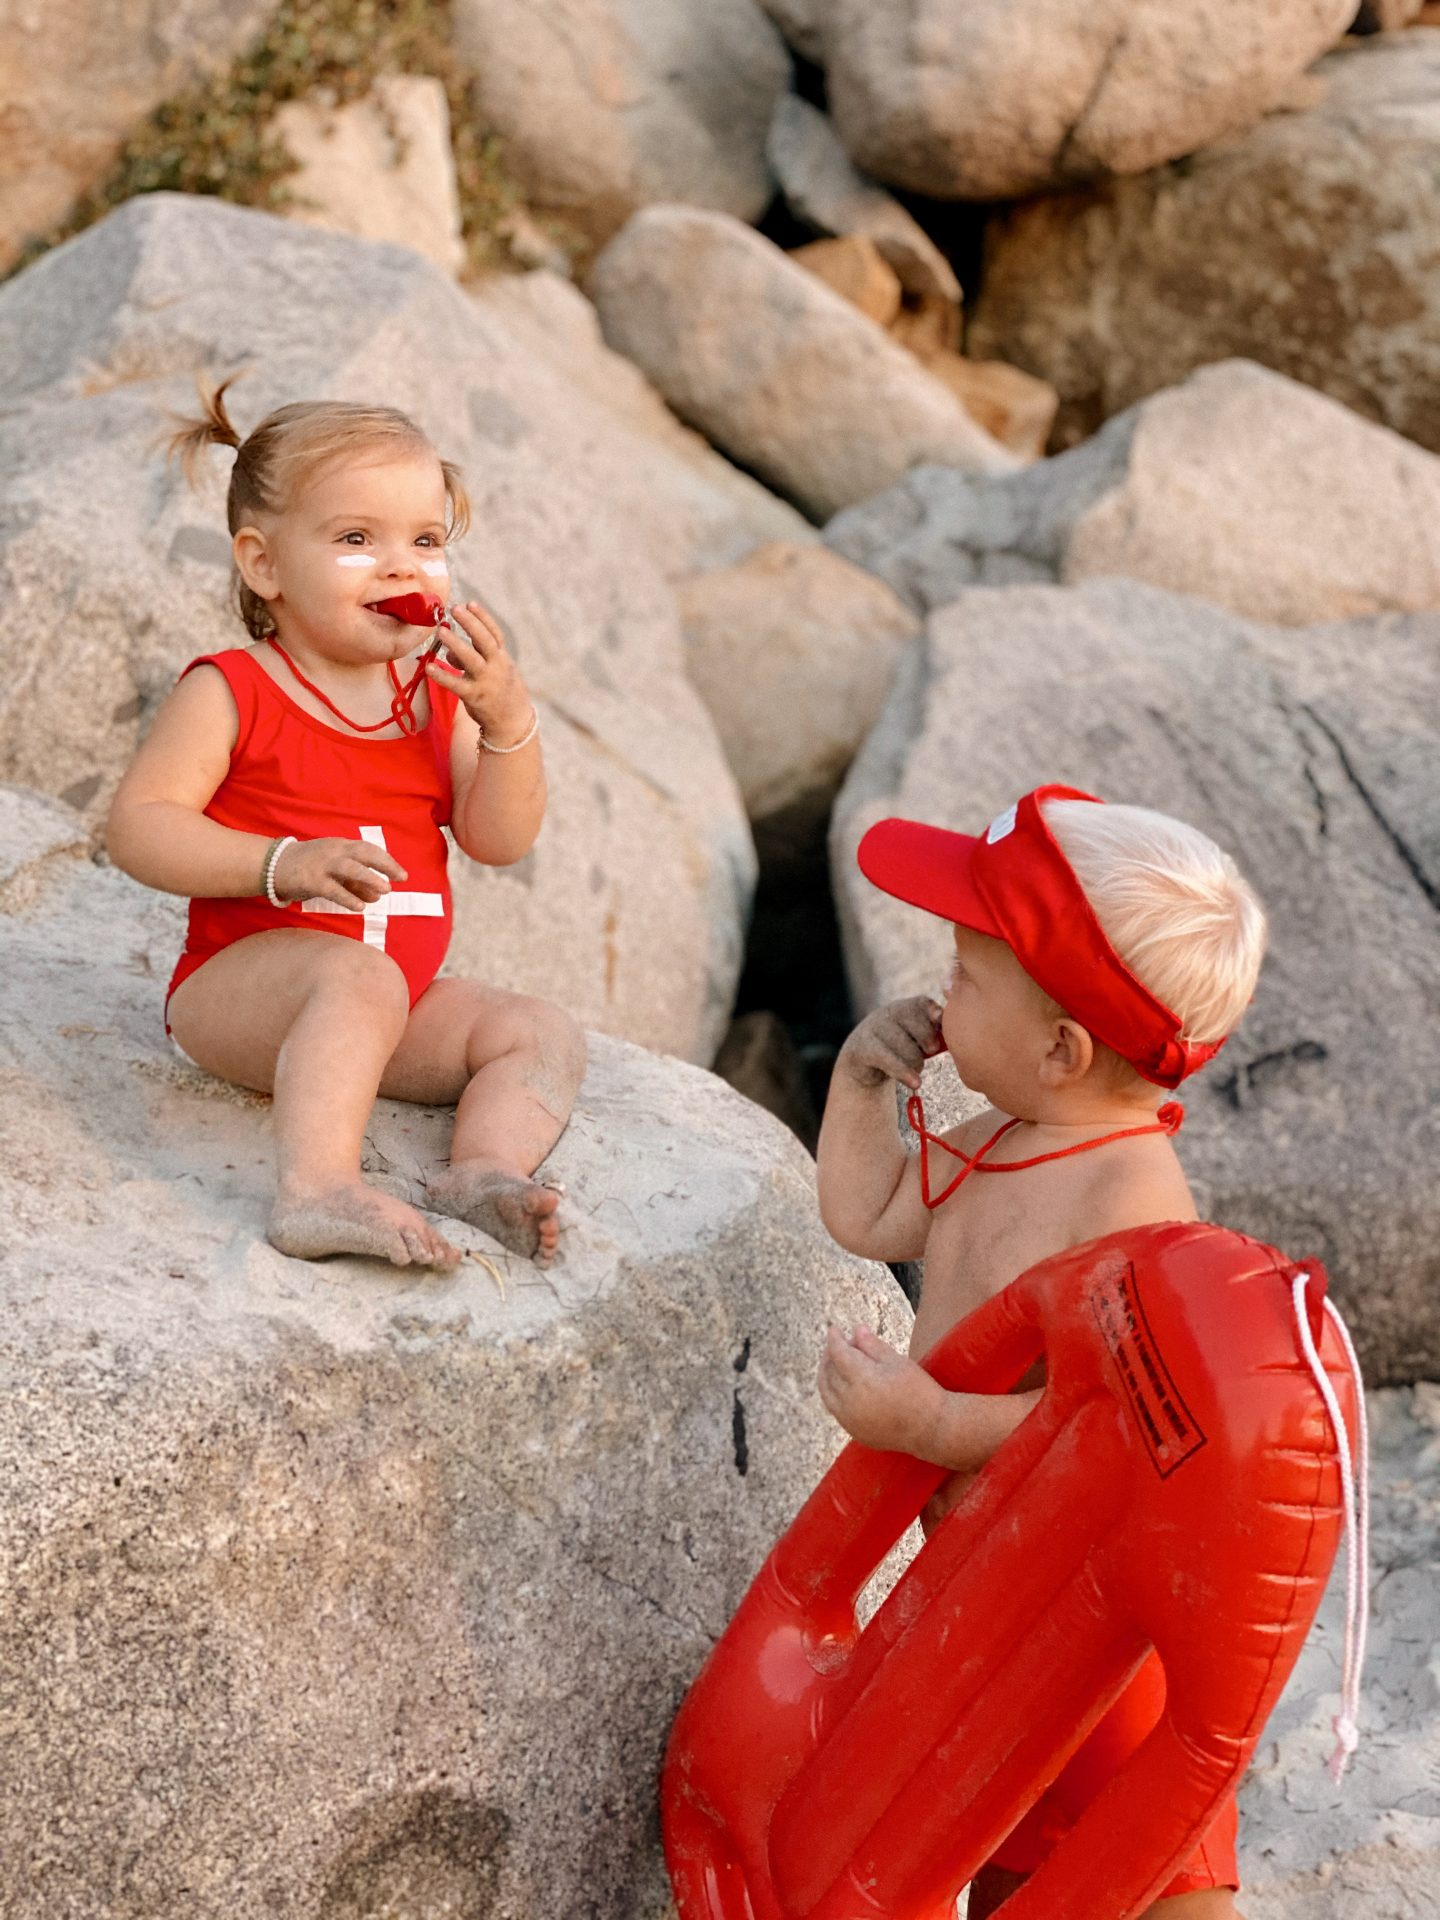 Family Halloween Costumes by popular San Diego lifestyle blog, Navy Grace: image of two young kids dressed up as lifeguards.